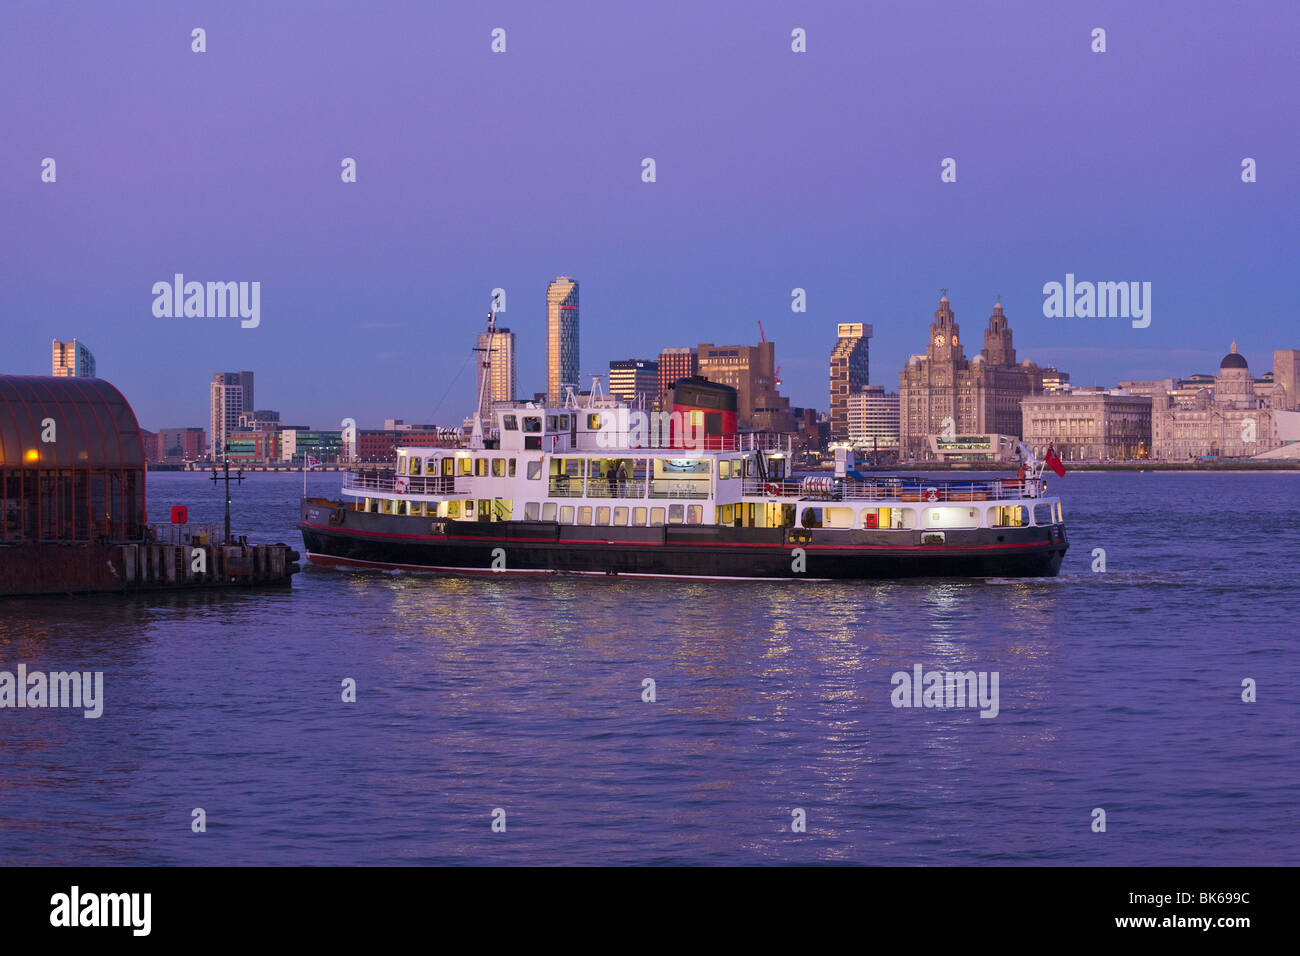 Ferry arriving at Woodside Ferry Terminal, Waterfront, Liverpool, Merseyside, England - Stock Image